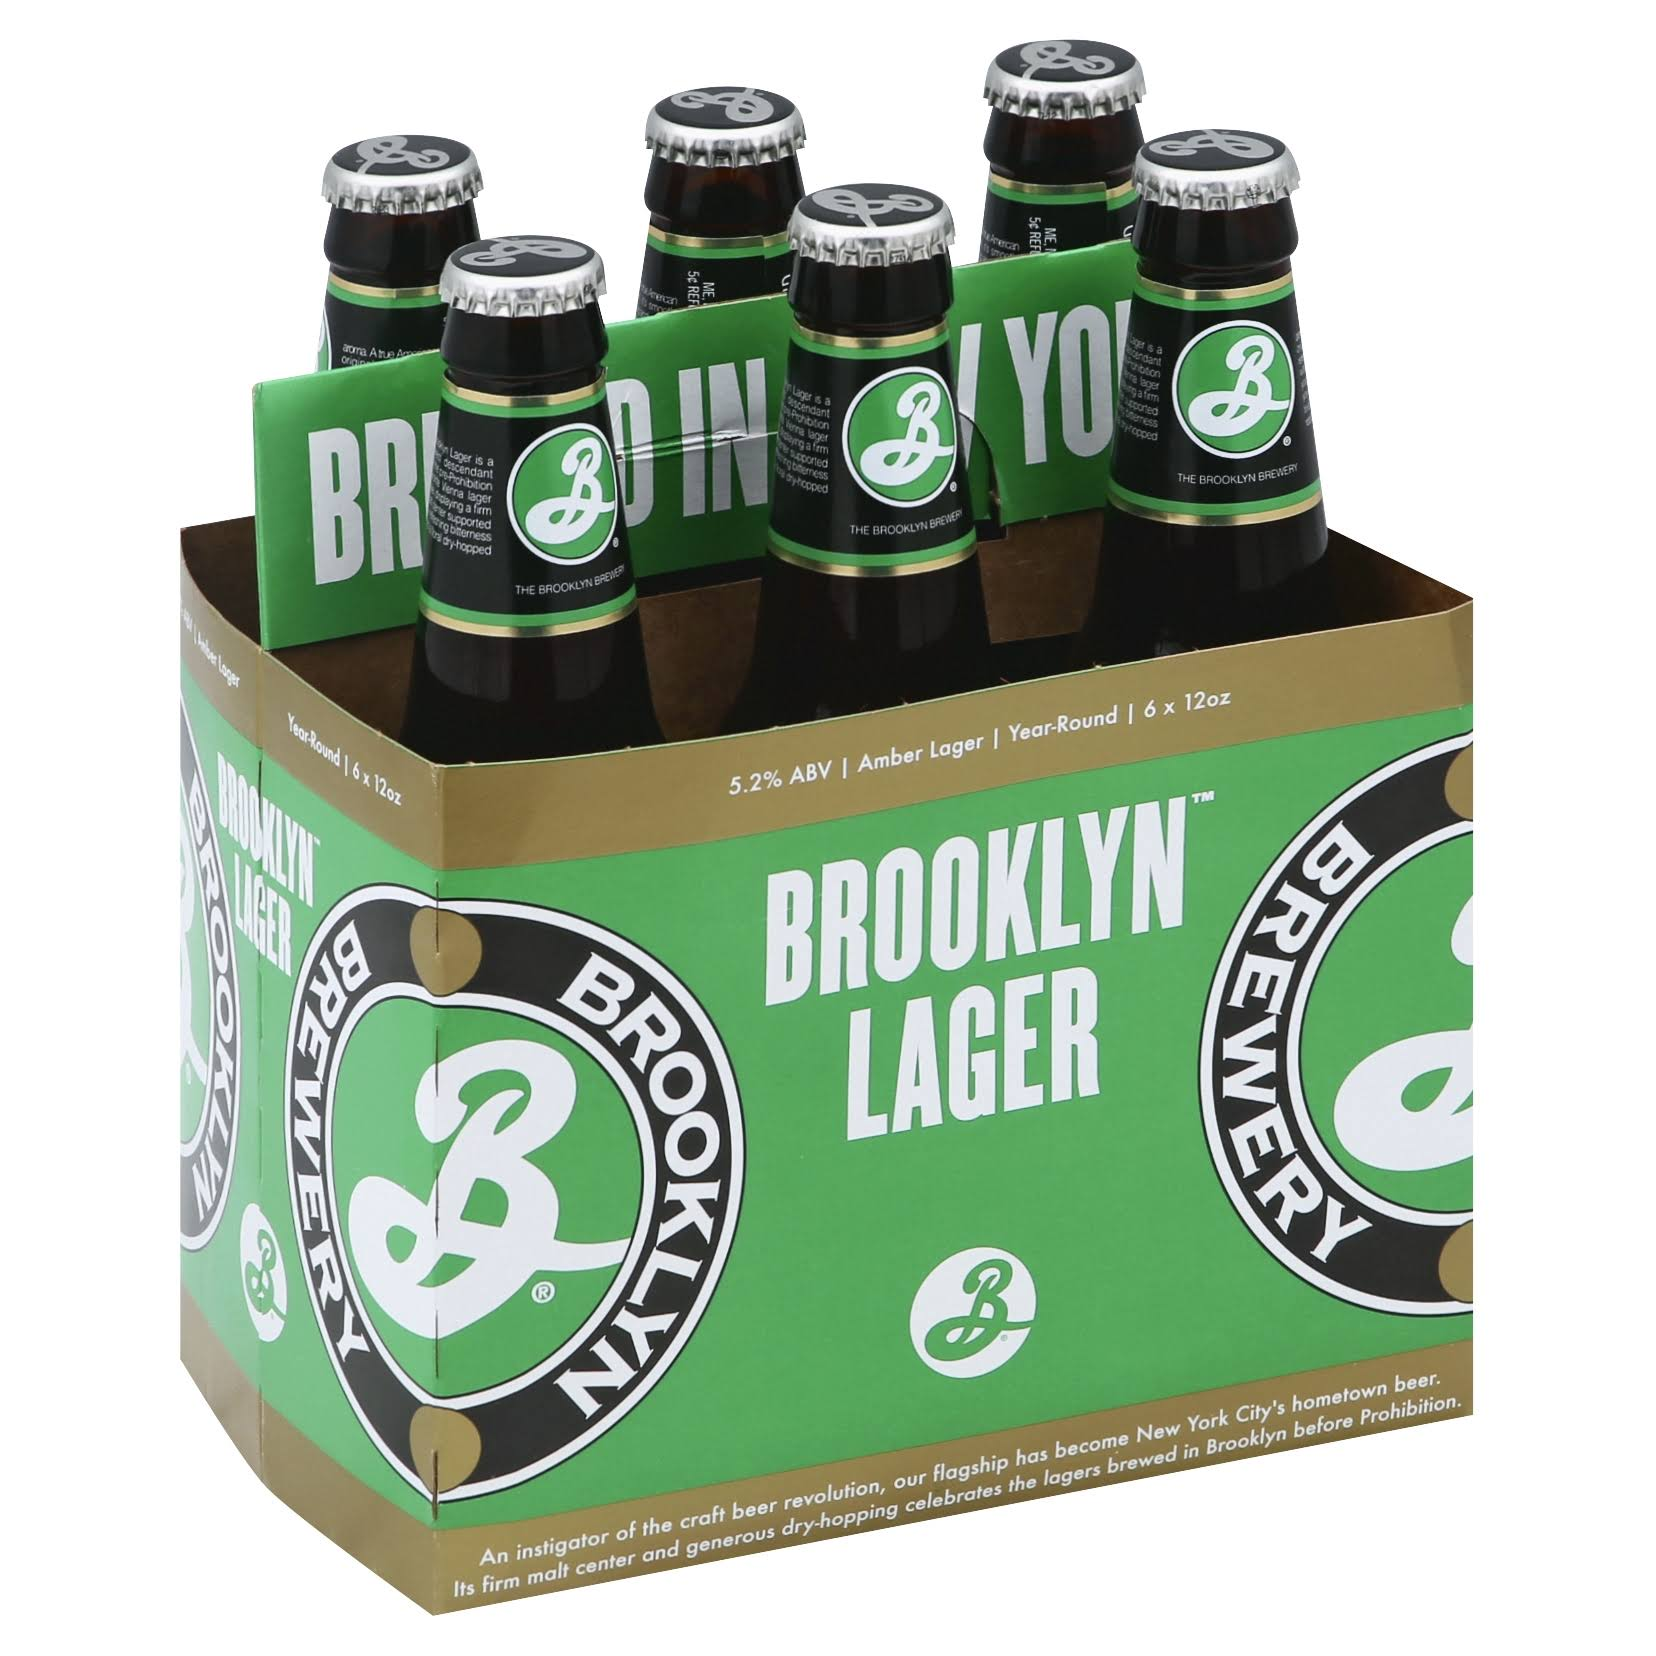 Brooklyn Beer, Brooklyn Lager - 6 12 oz bottles